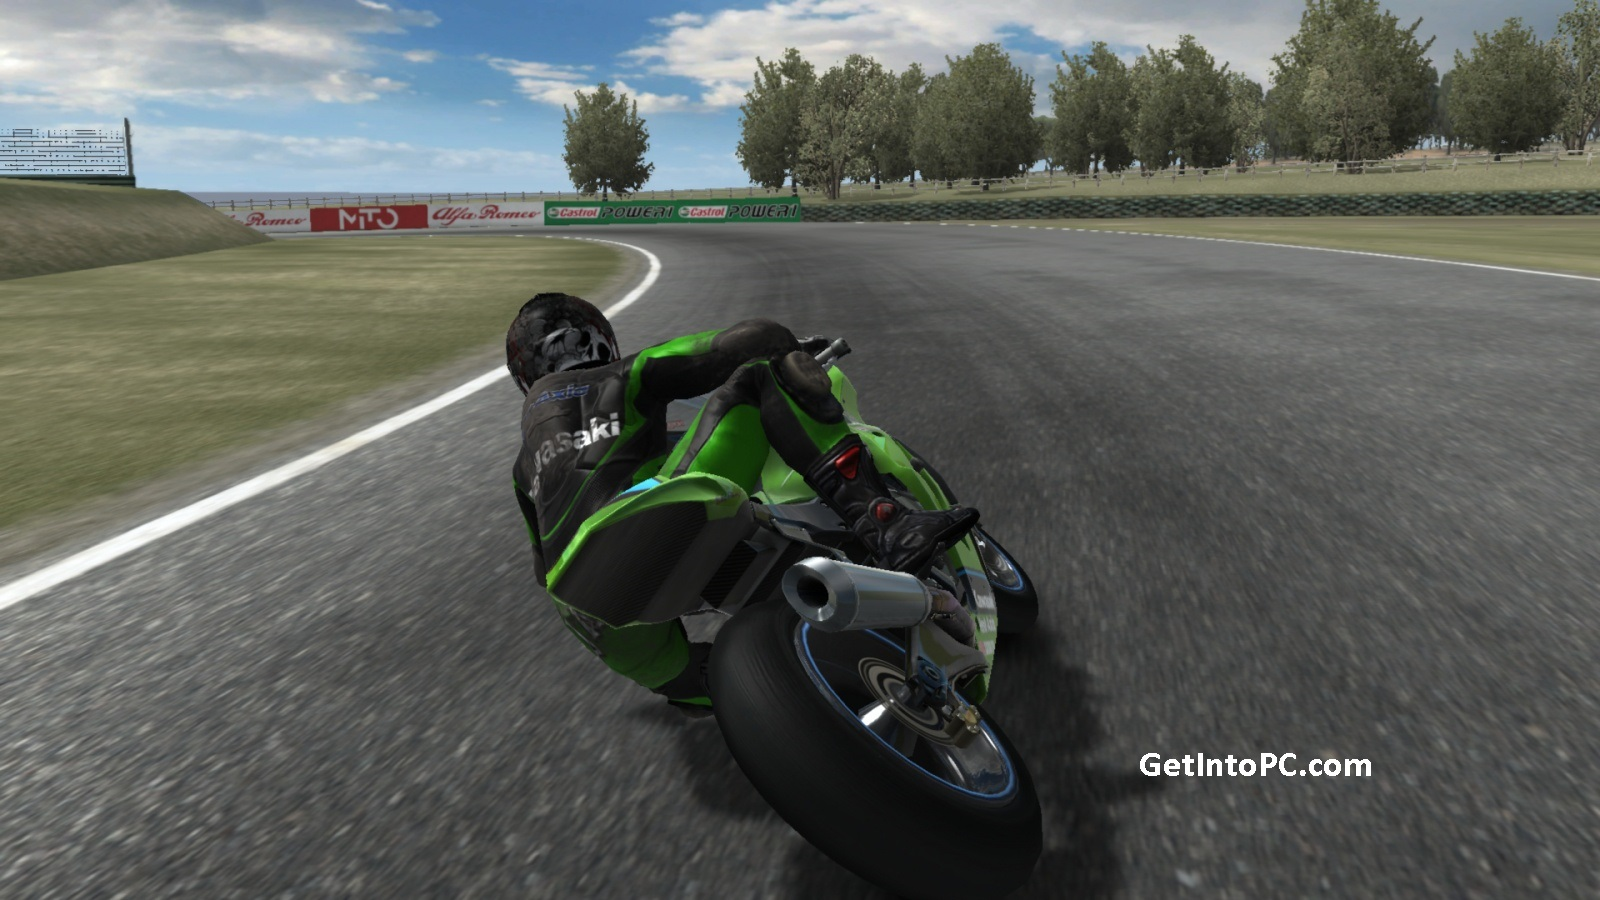 Bike Racing Games' This Bike racing game has